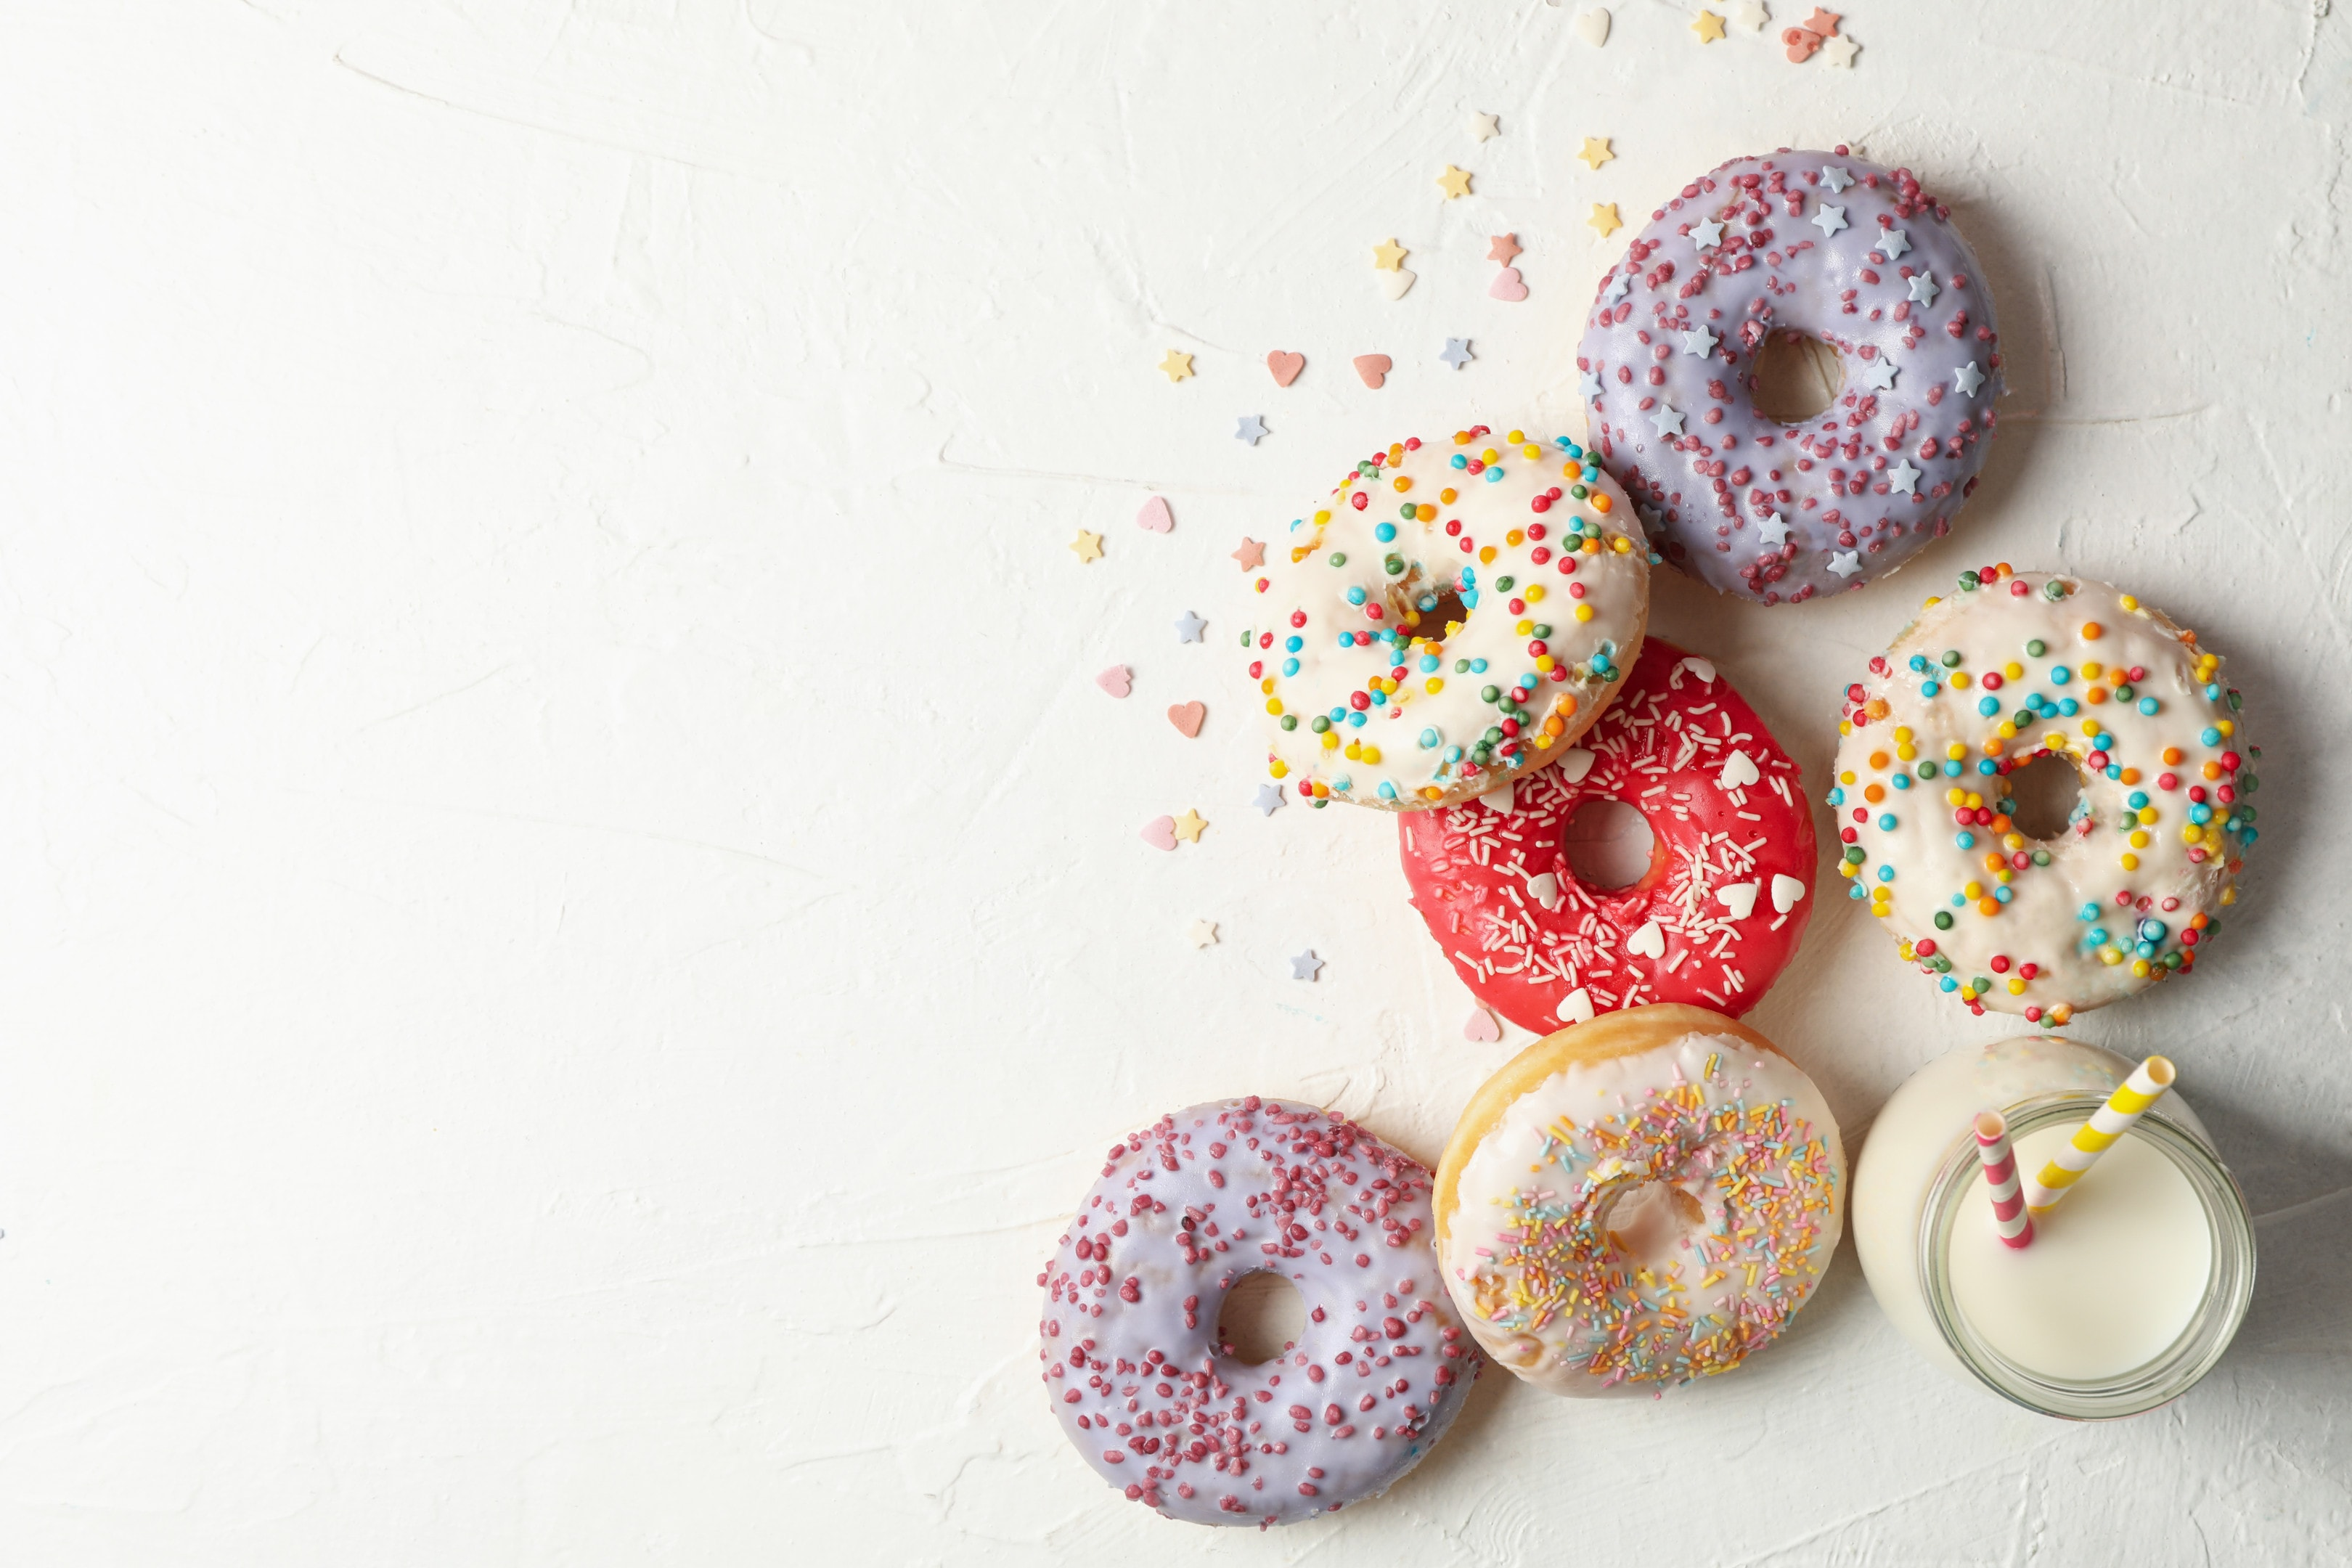 Milk and tasty donuts on white table